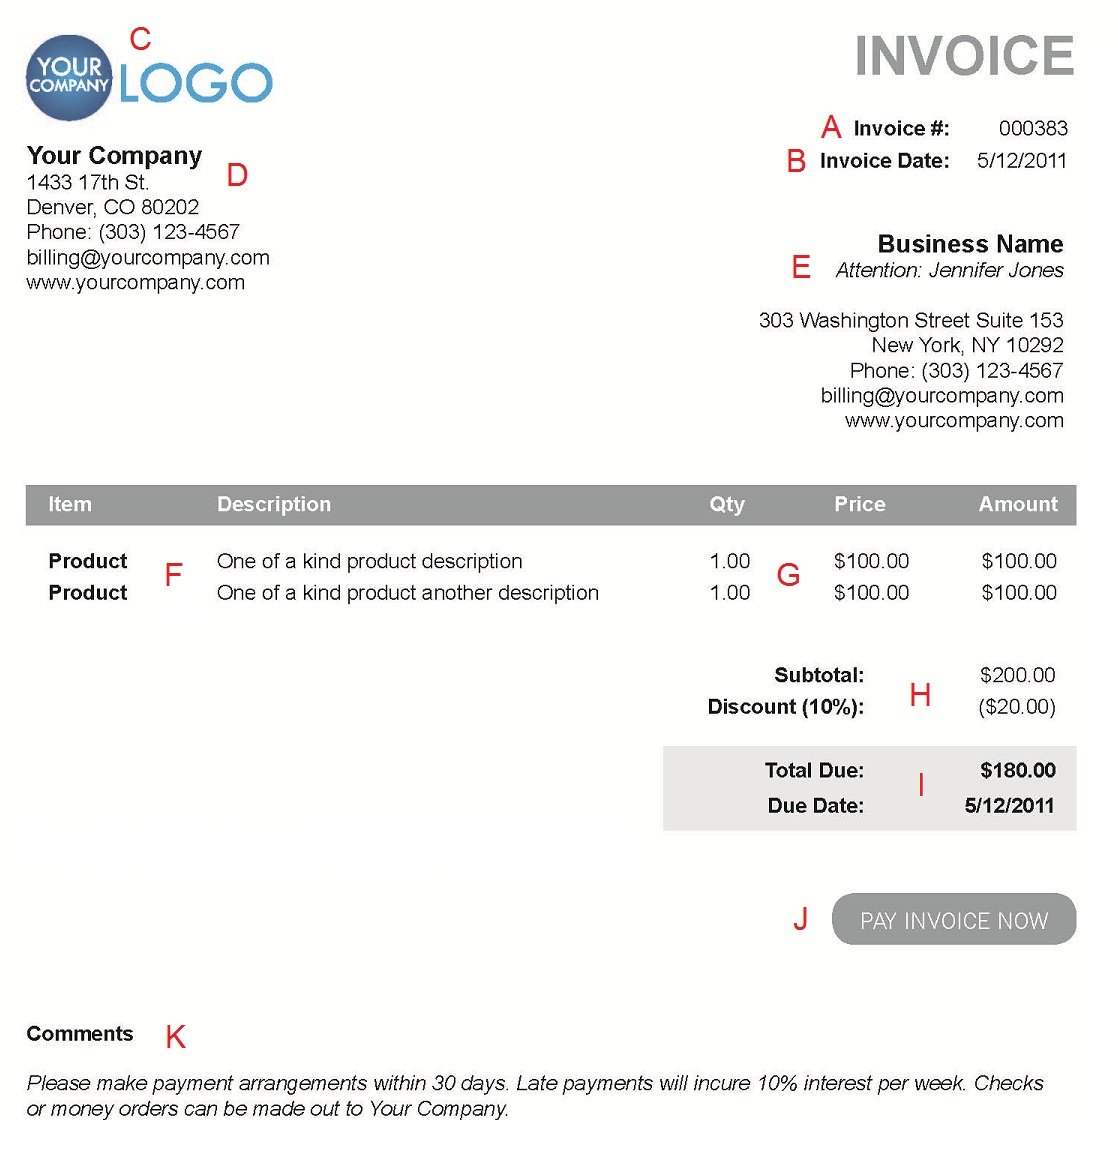 Opposenewapstandardsus  Surprising The  Different Sections Of An Electronic Payment Invoice With Hot A  With Agreeable Make A Fake Invoice Also Invoice Law In Addition Writing Invoice Template And Invoics As Well As Free Invoice Template Uk Word Additionally Invoice Australia From Paysimplecom With Opposenewapstandardsus  Hot The  Different Sections Of An Electronic Payment Invoice With Agreeable A  And Surprising Make A Fake Invoice Also Invoice Law In Addition Writing Invoice Template From Paysimplecom